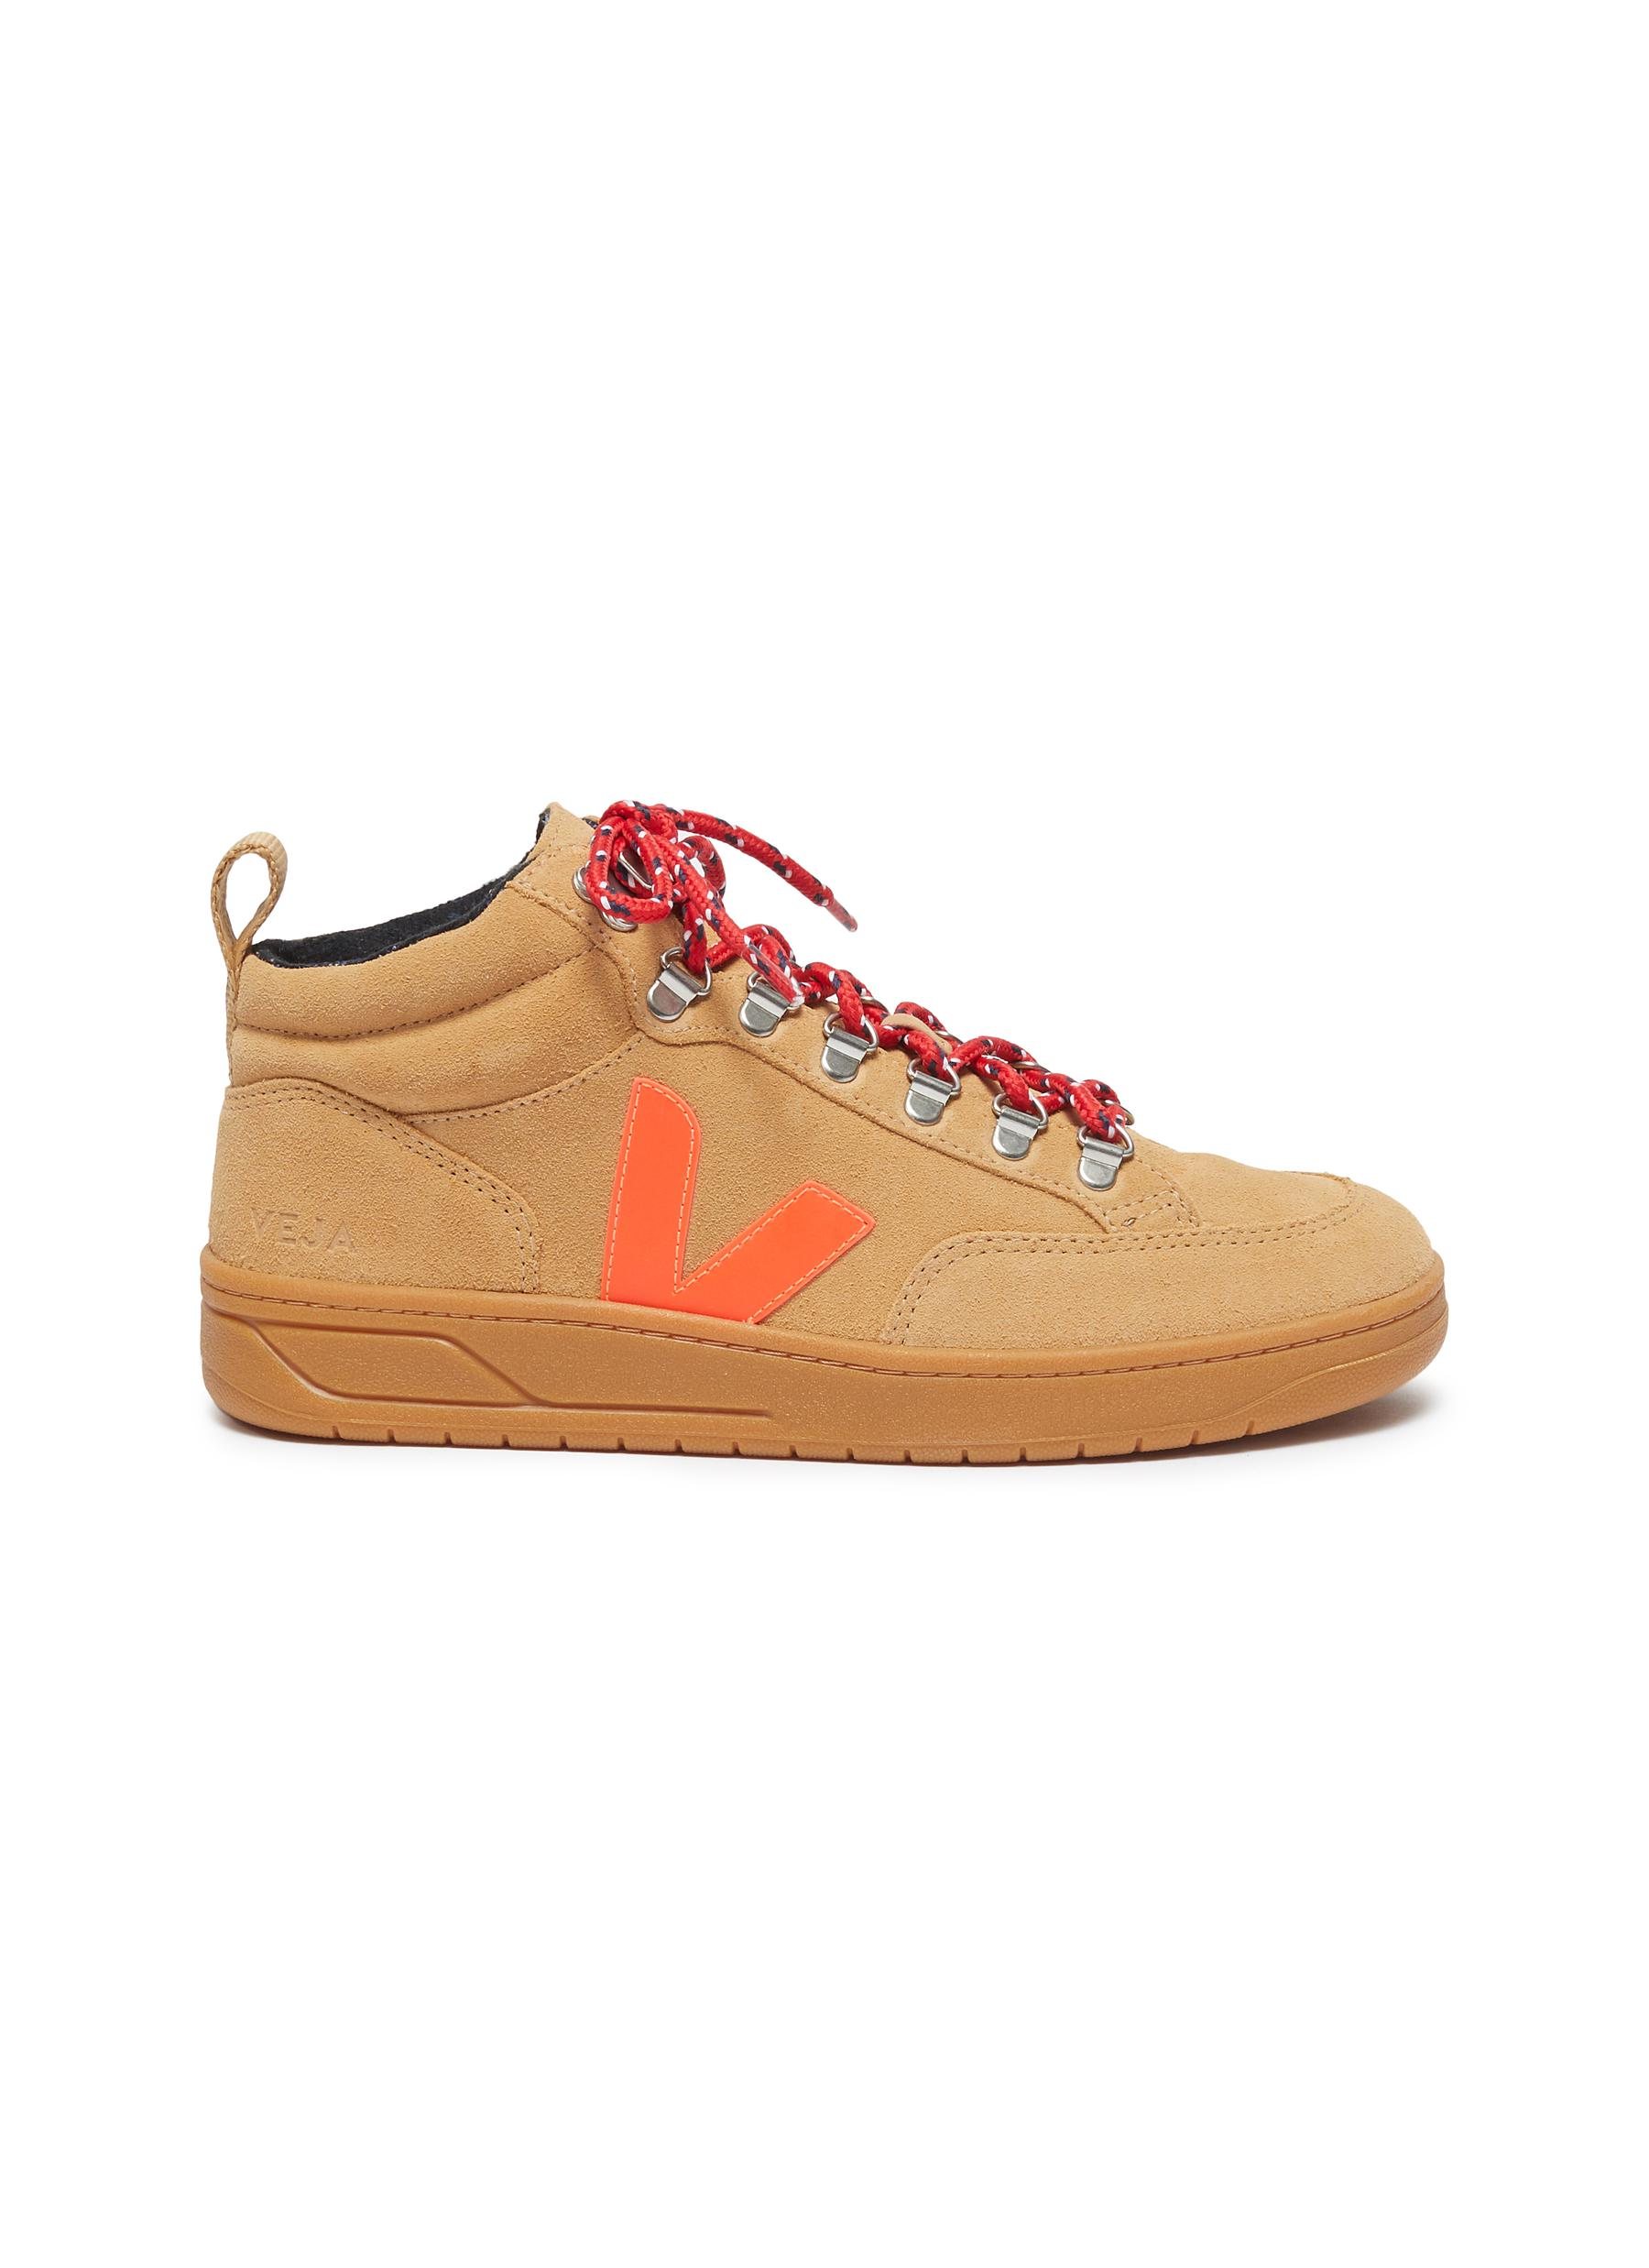 Roraima suede high top sneakers by Veja